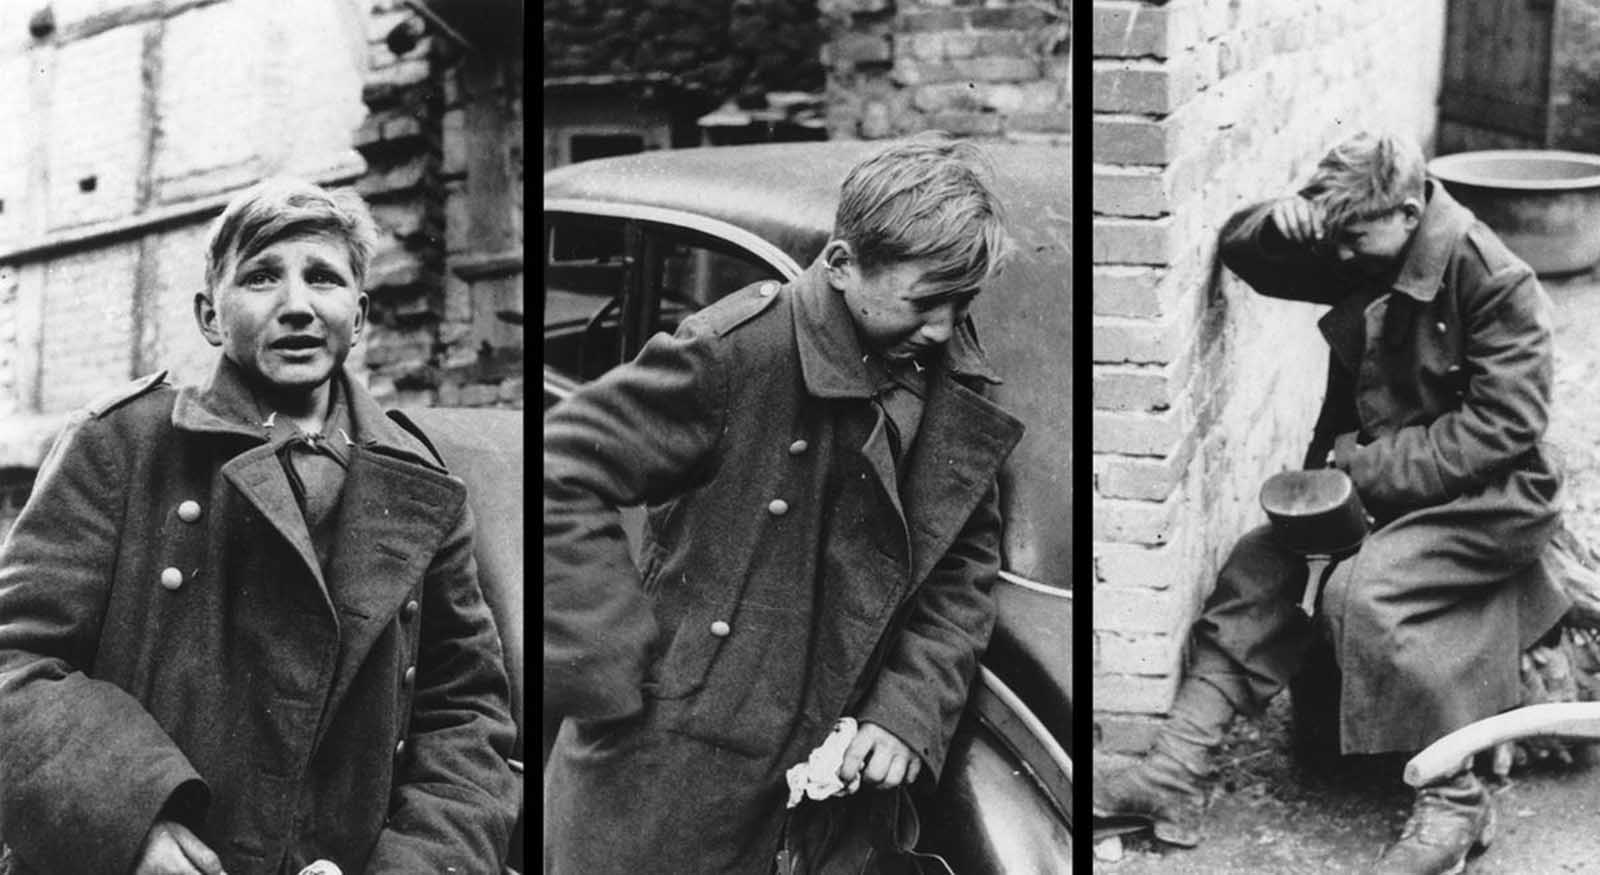 This combination of three photographs shows the reaction of a 16-year old German soldier after he was captured by U.S. forces, at an unknown location in Germany, in 1945.